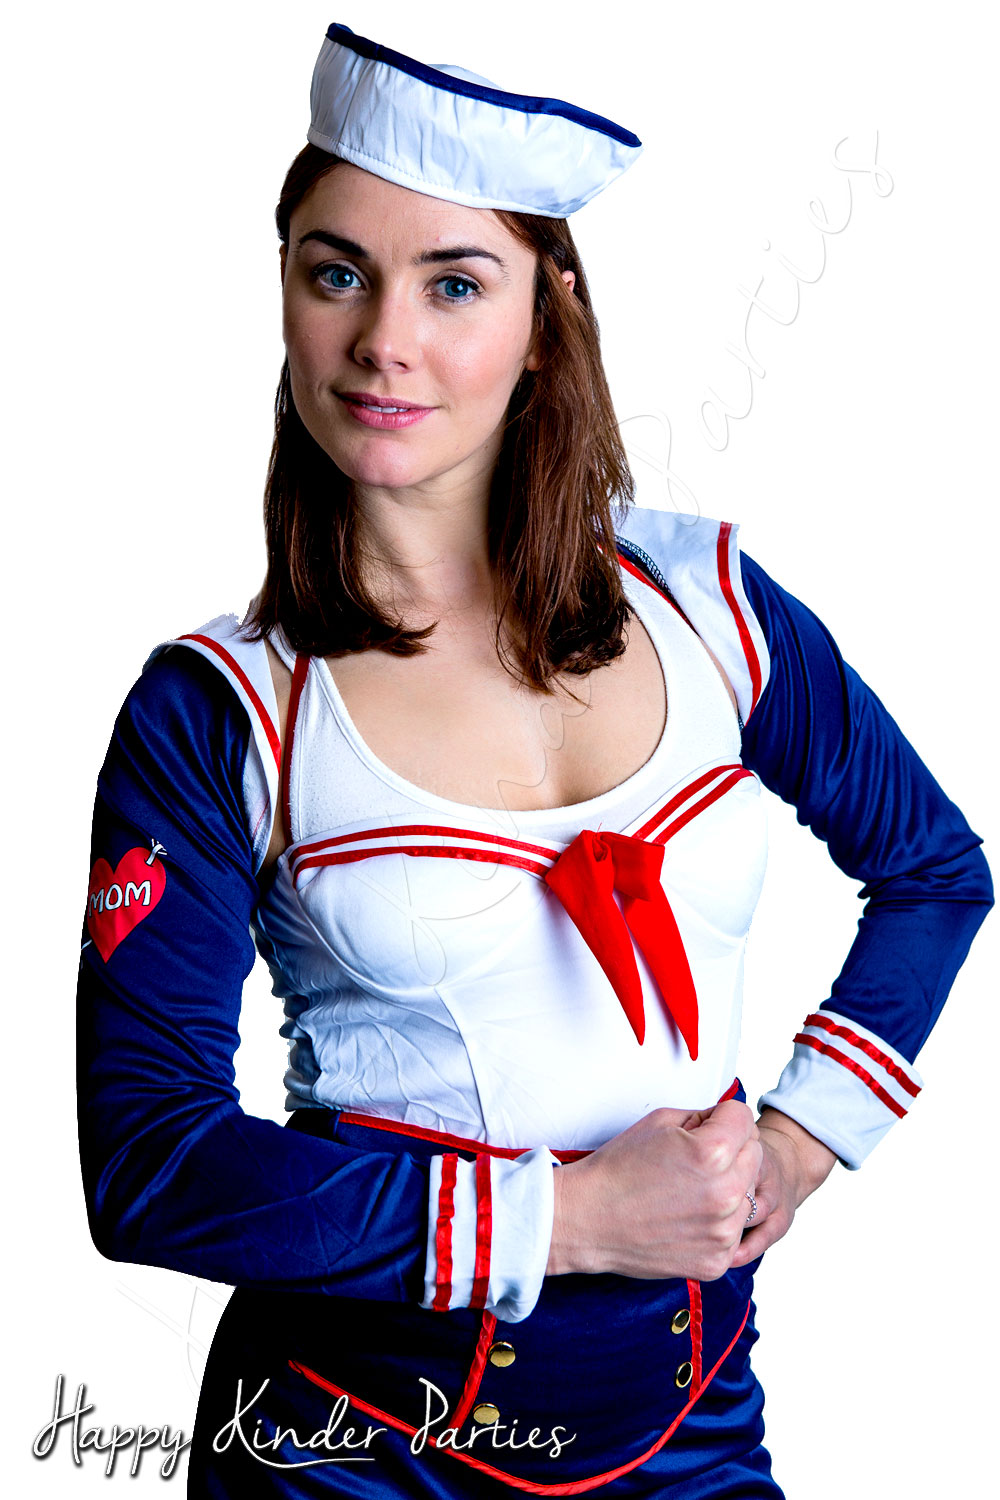 Sailor Childrens Party Entertainer Costume